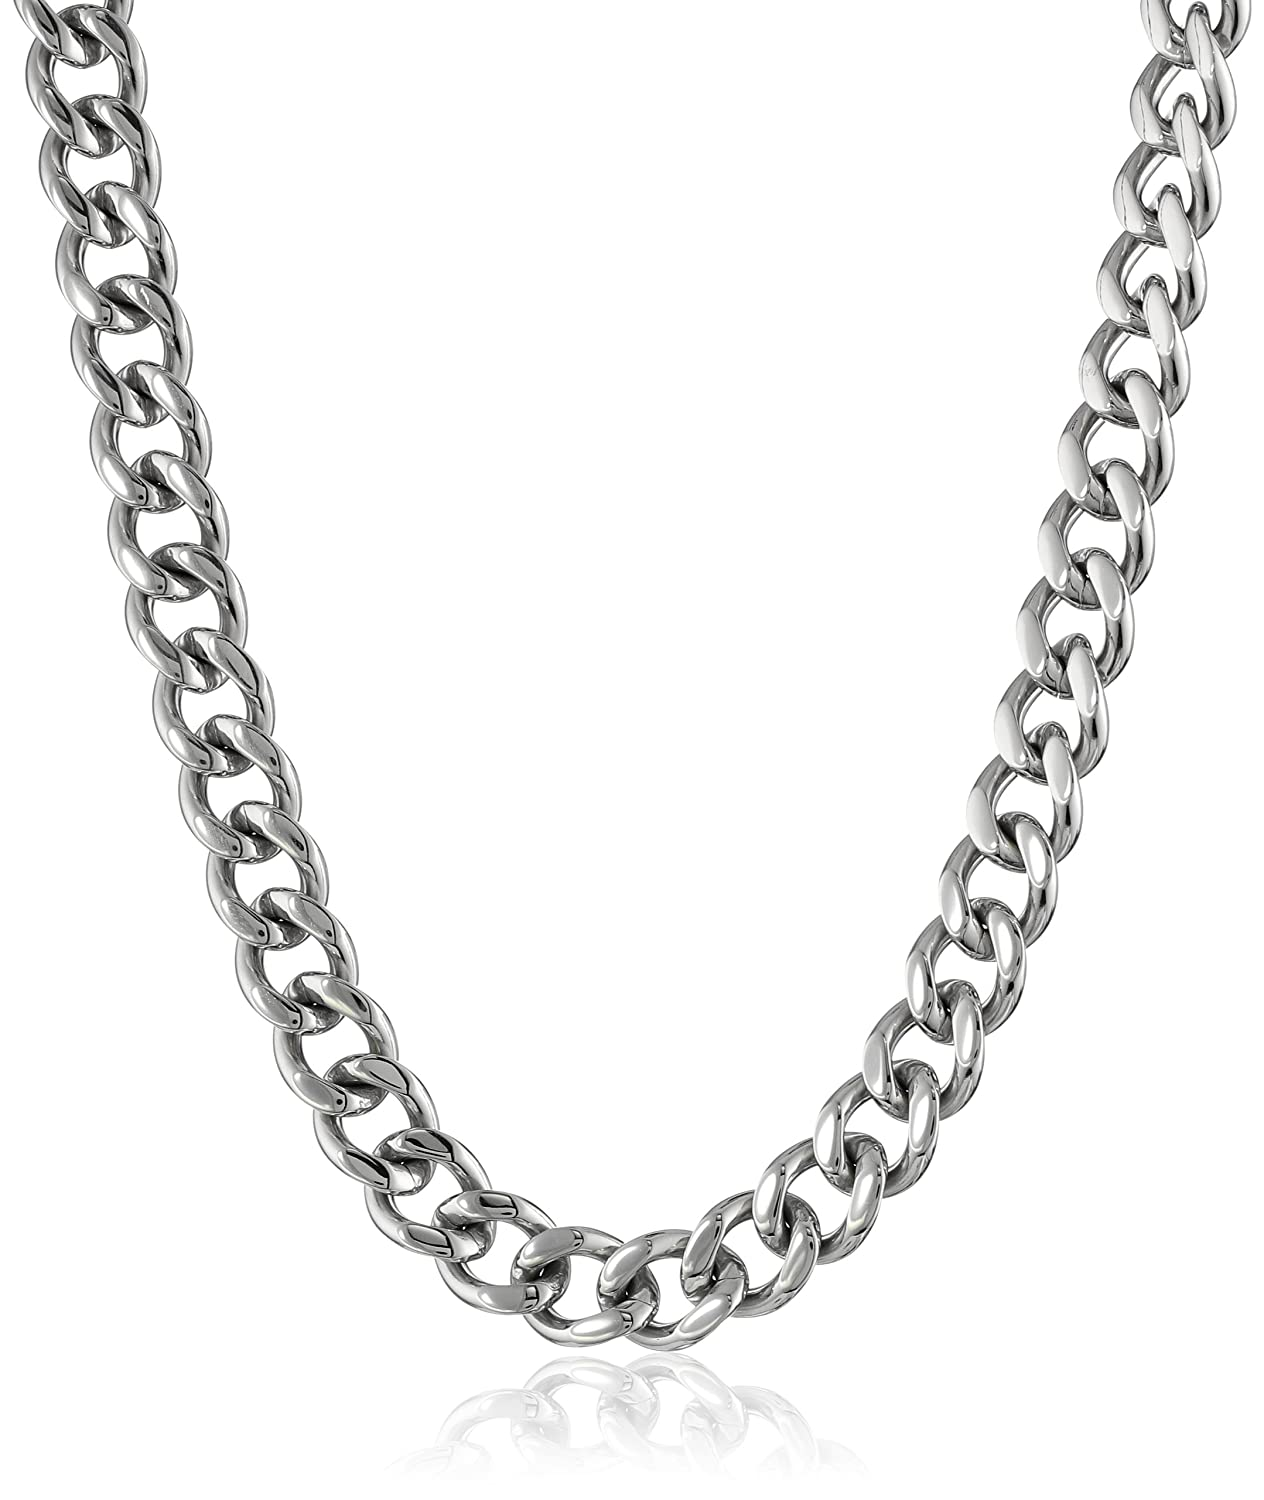 chain necklace model product for alibaba new gold com men buy chains jewelry on mens detail heavy